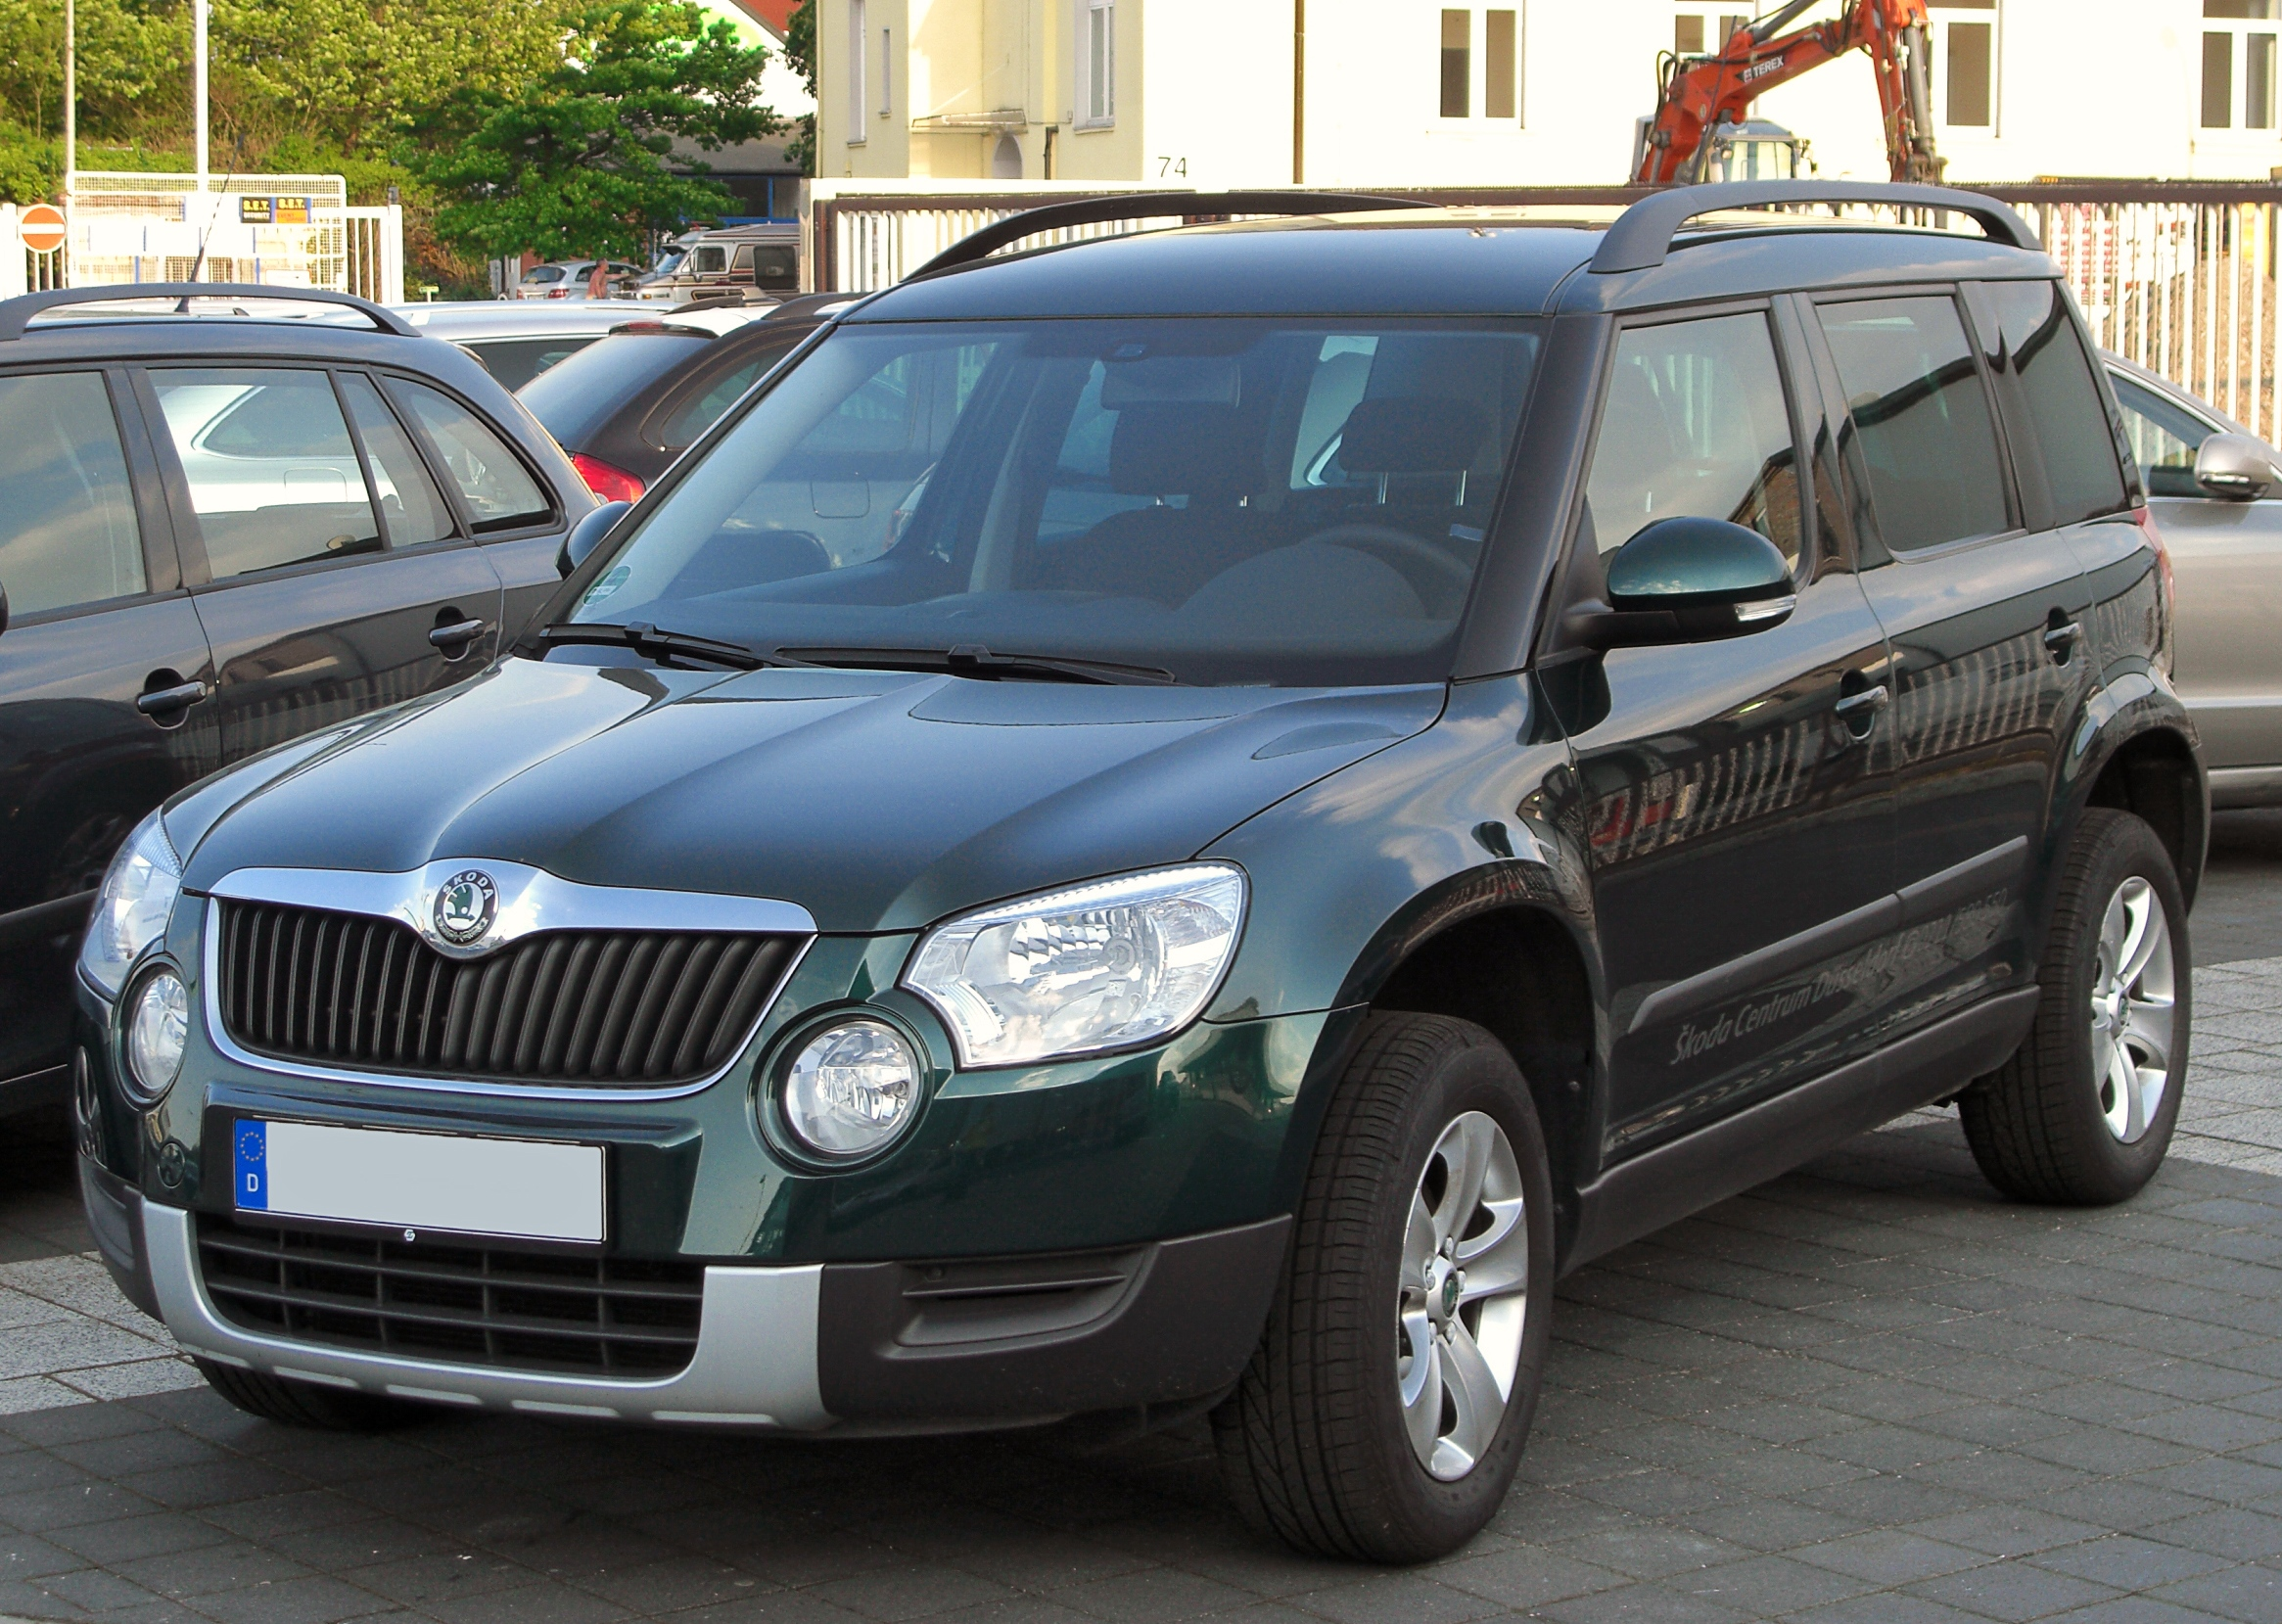 file skoda yeti 2 0 tdi 4x4 front wikimedia commons. Black Bedroom Furniture Sets. Home Design Ideas